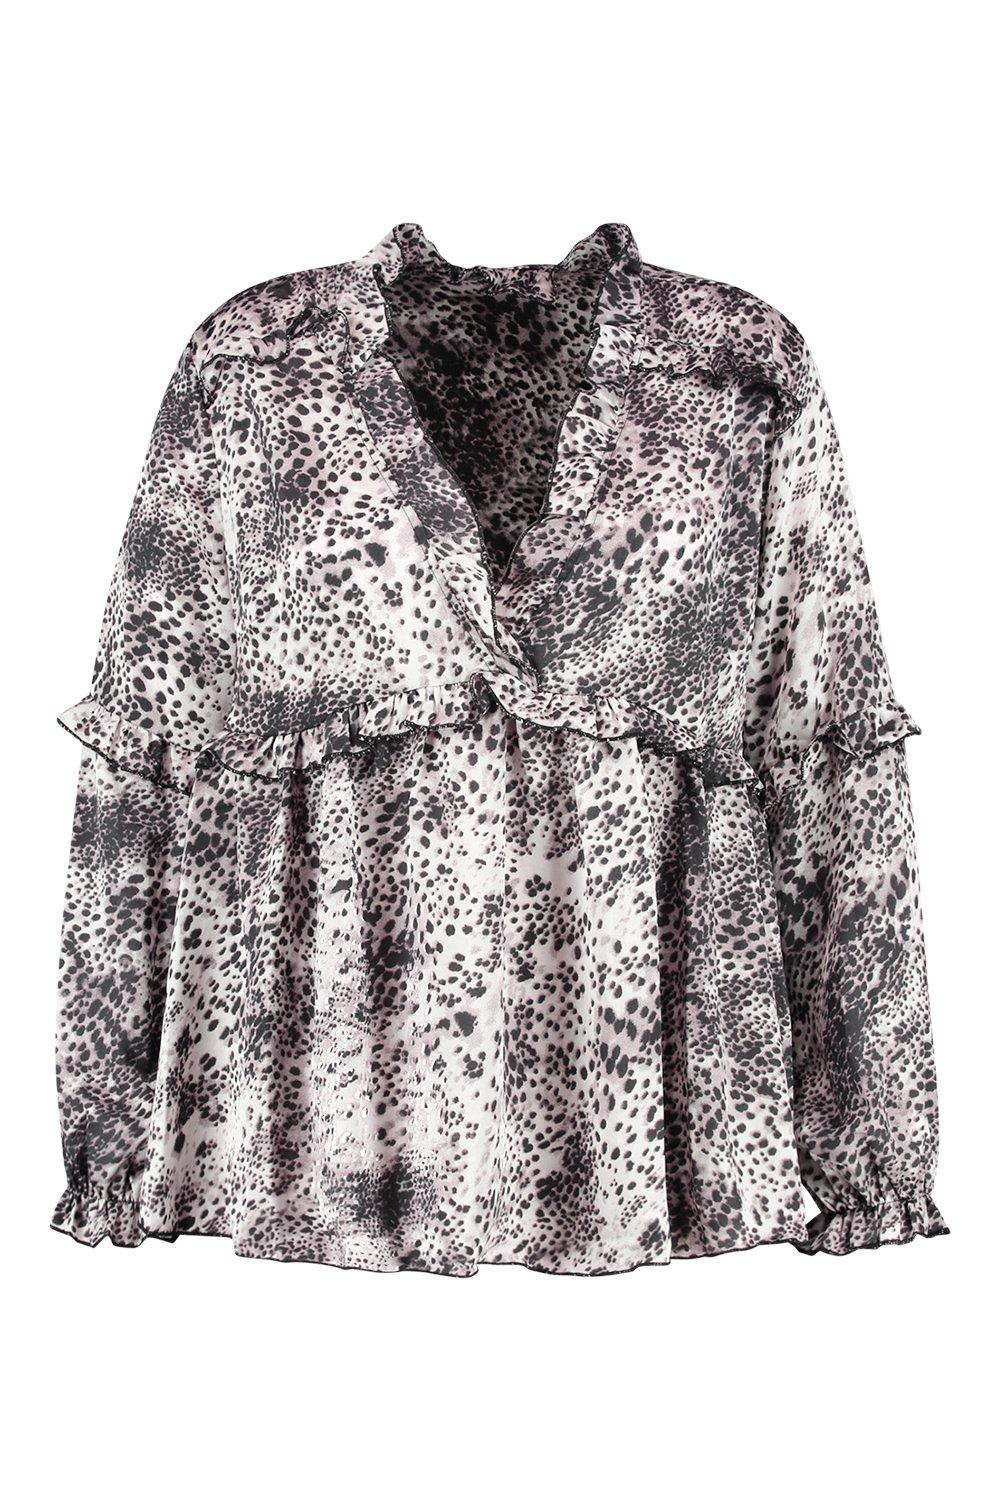 escote con estampado animal y Plus volantes Blusa gris pronunciado FO4qPwP